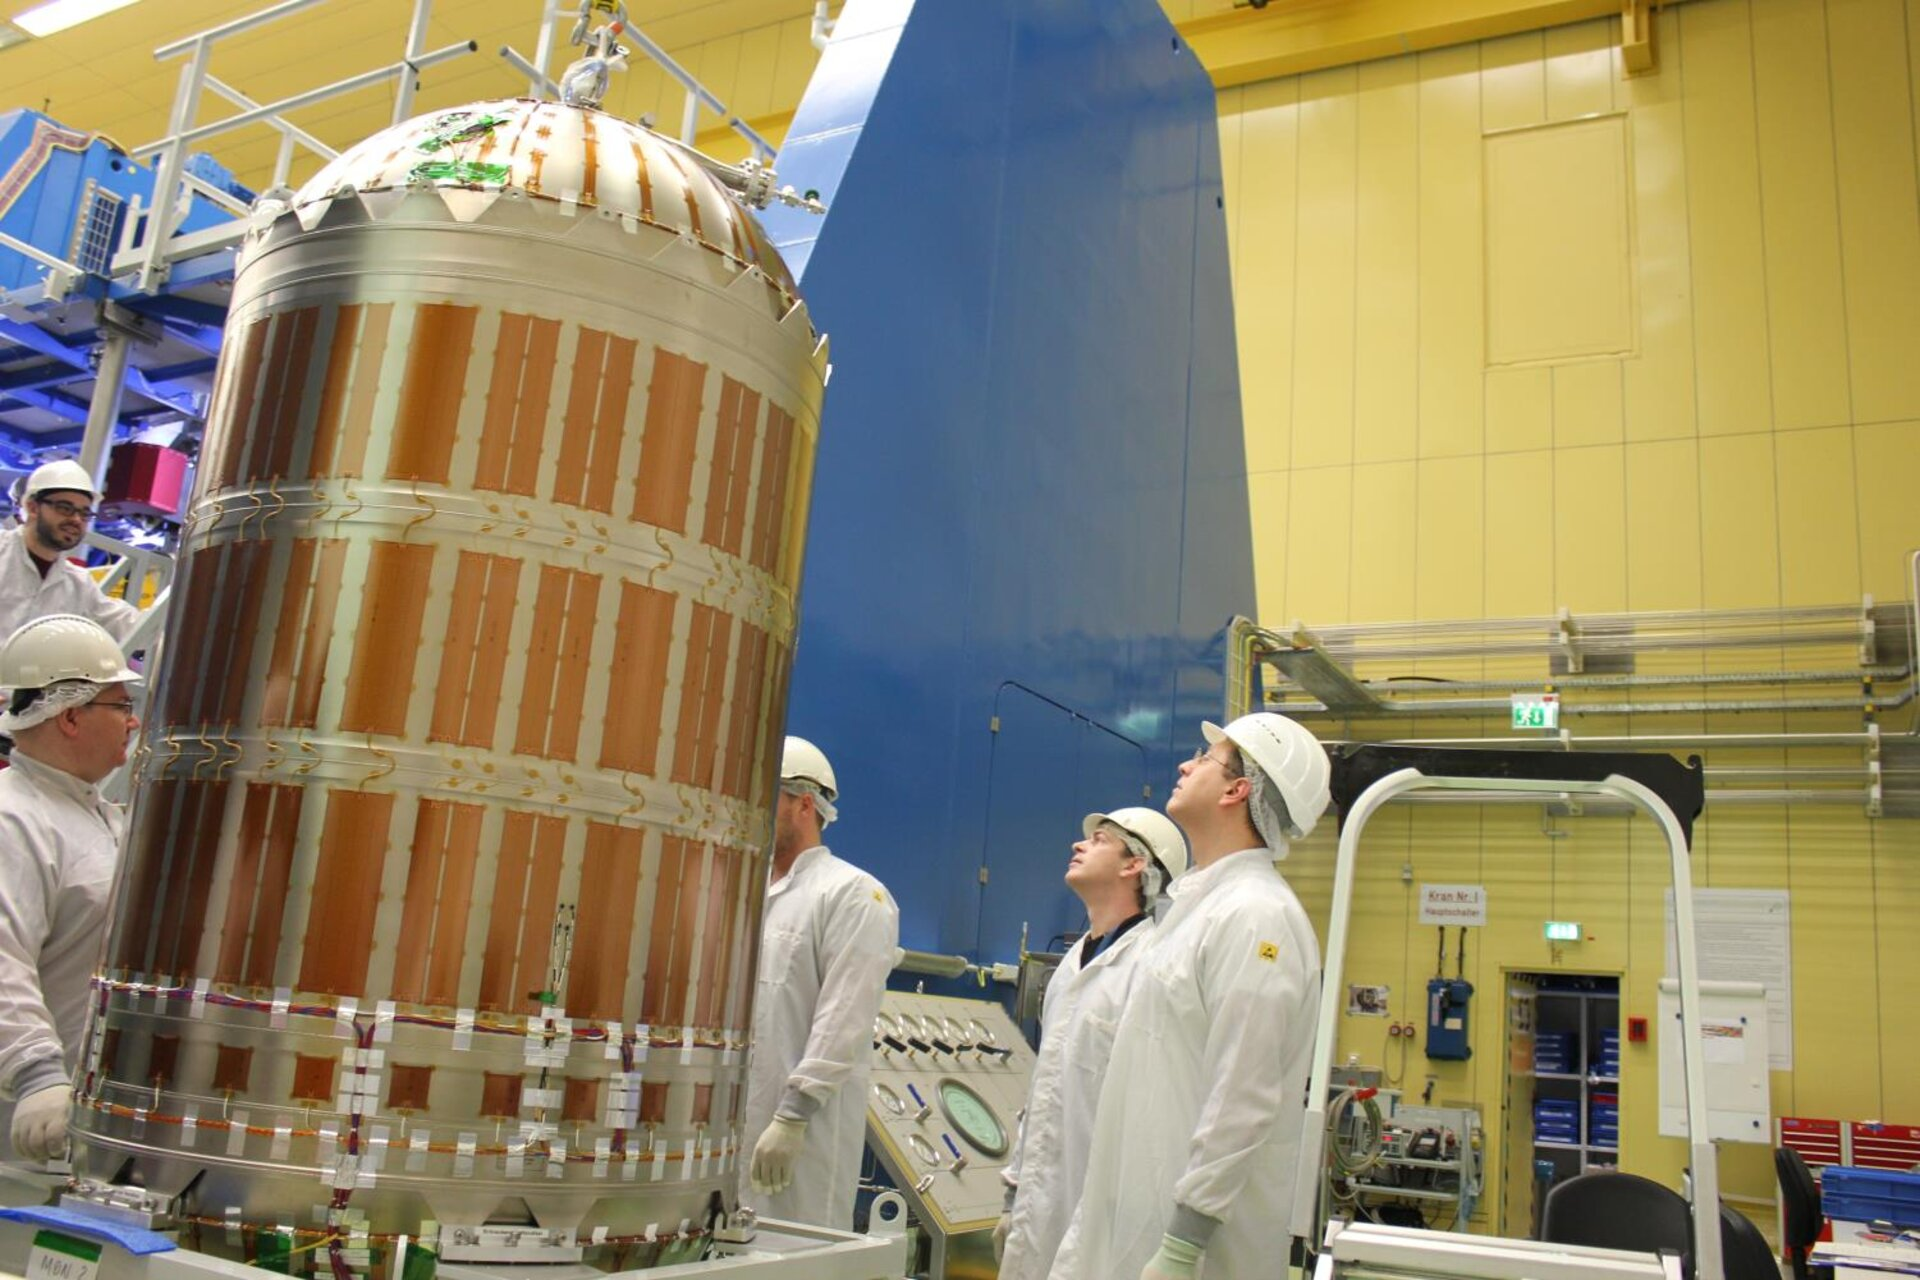 Orion service module fuel tank installation